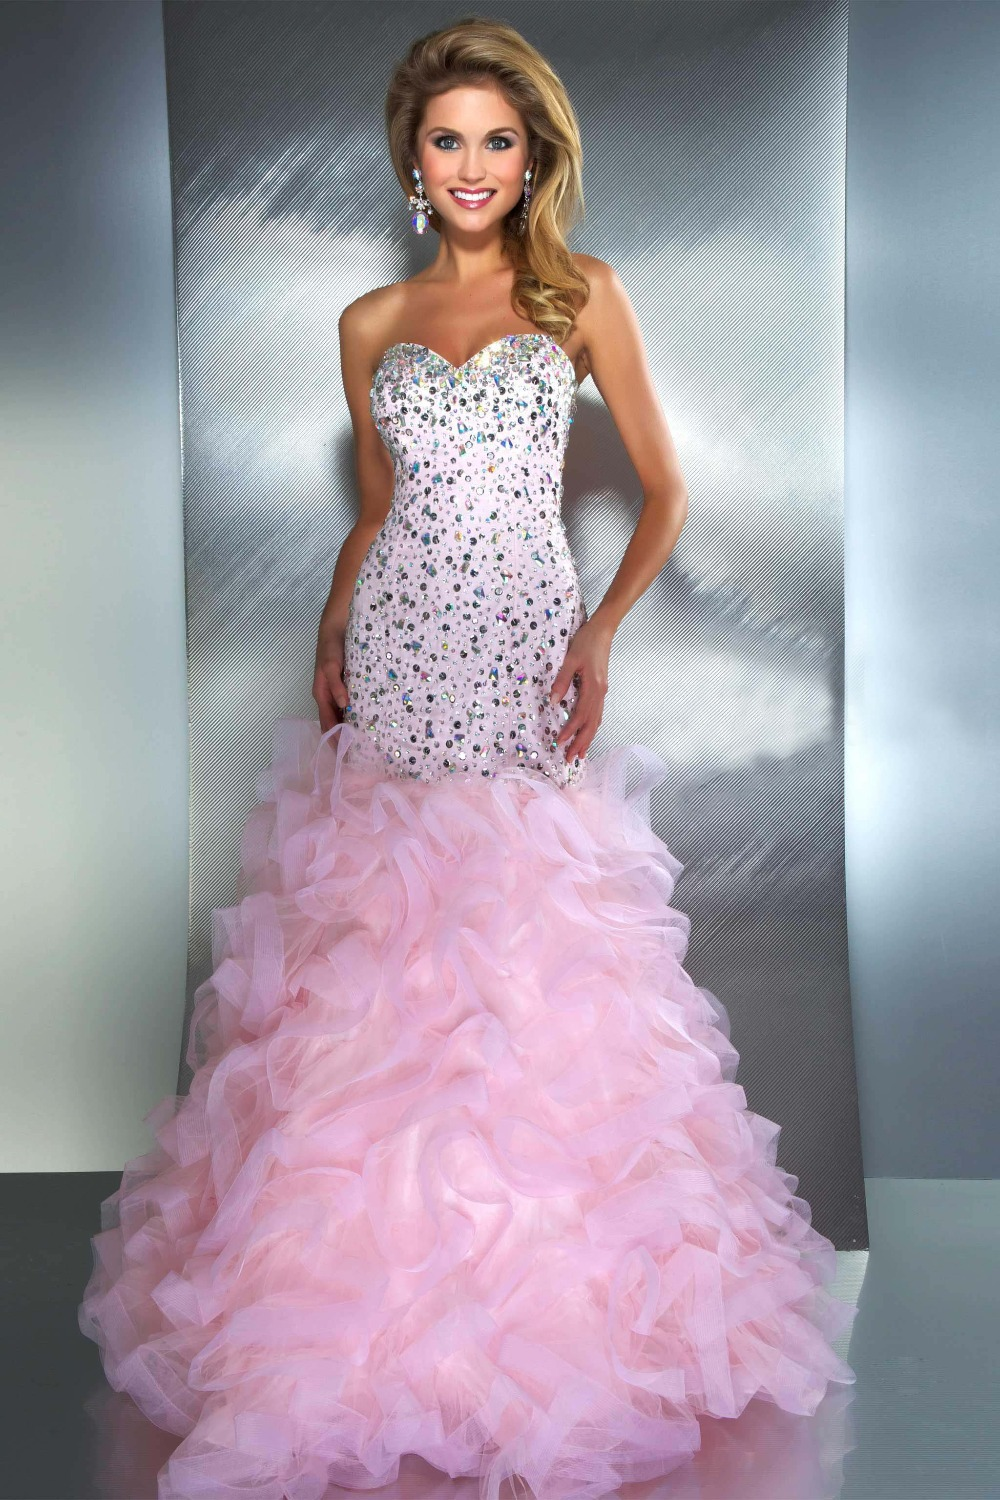 Fish Tail Prom Dresses - Boutique Prom Dresses